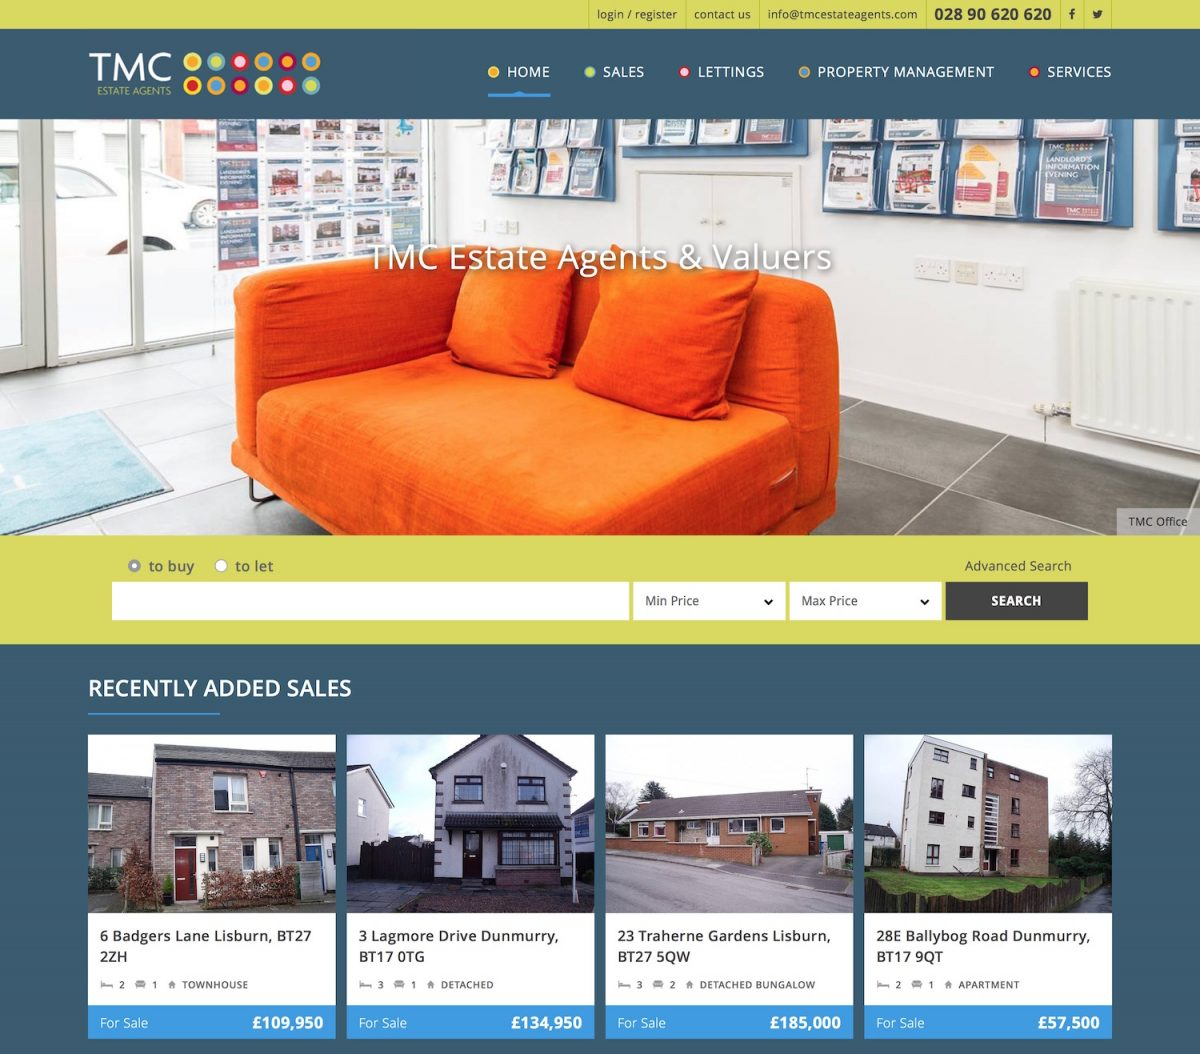 TMC Estate Agents Northern Ireland - Residential Property For Sale and For Rent